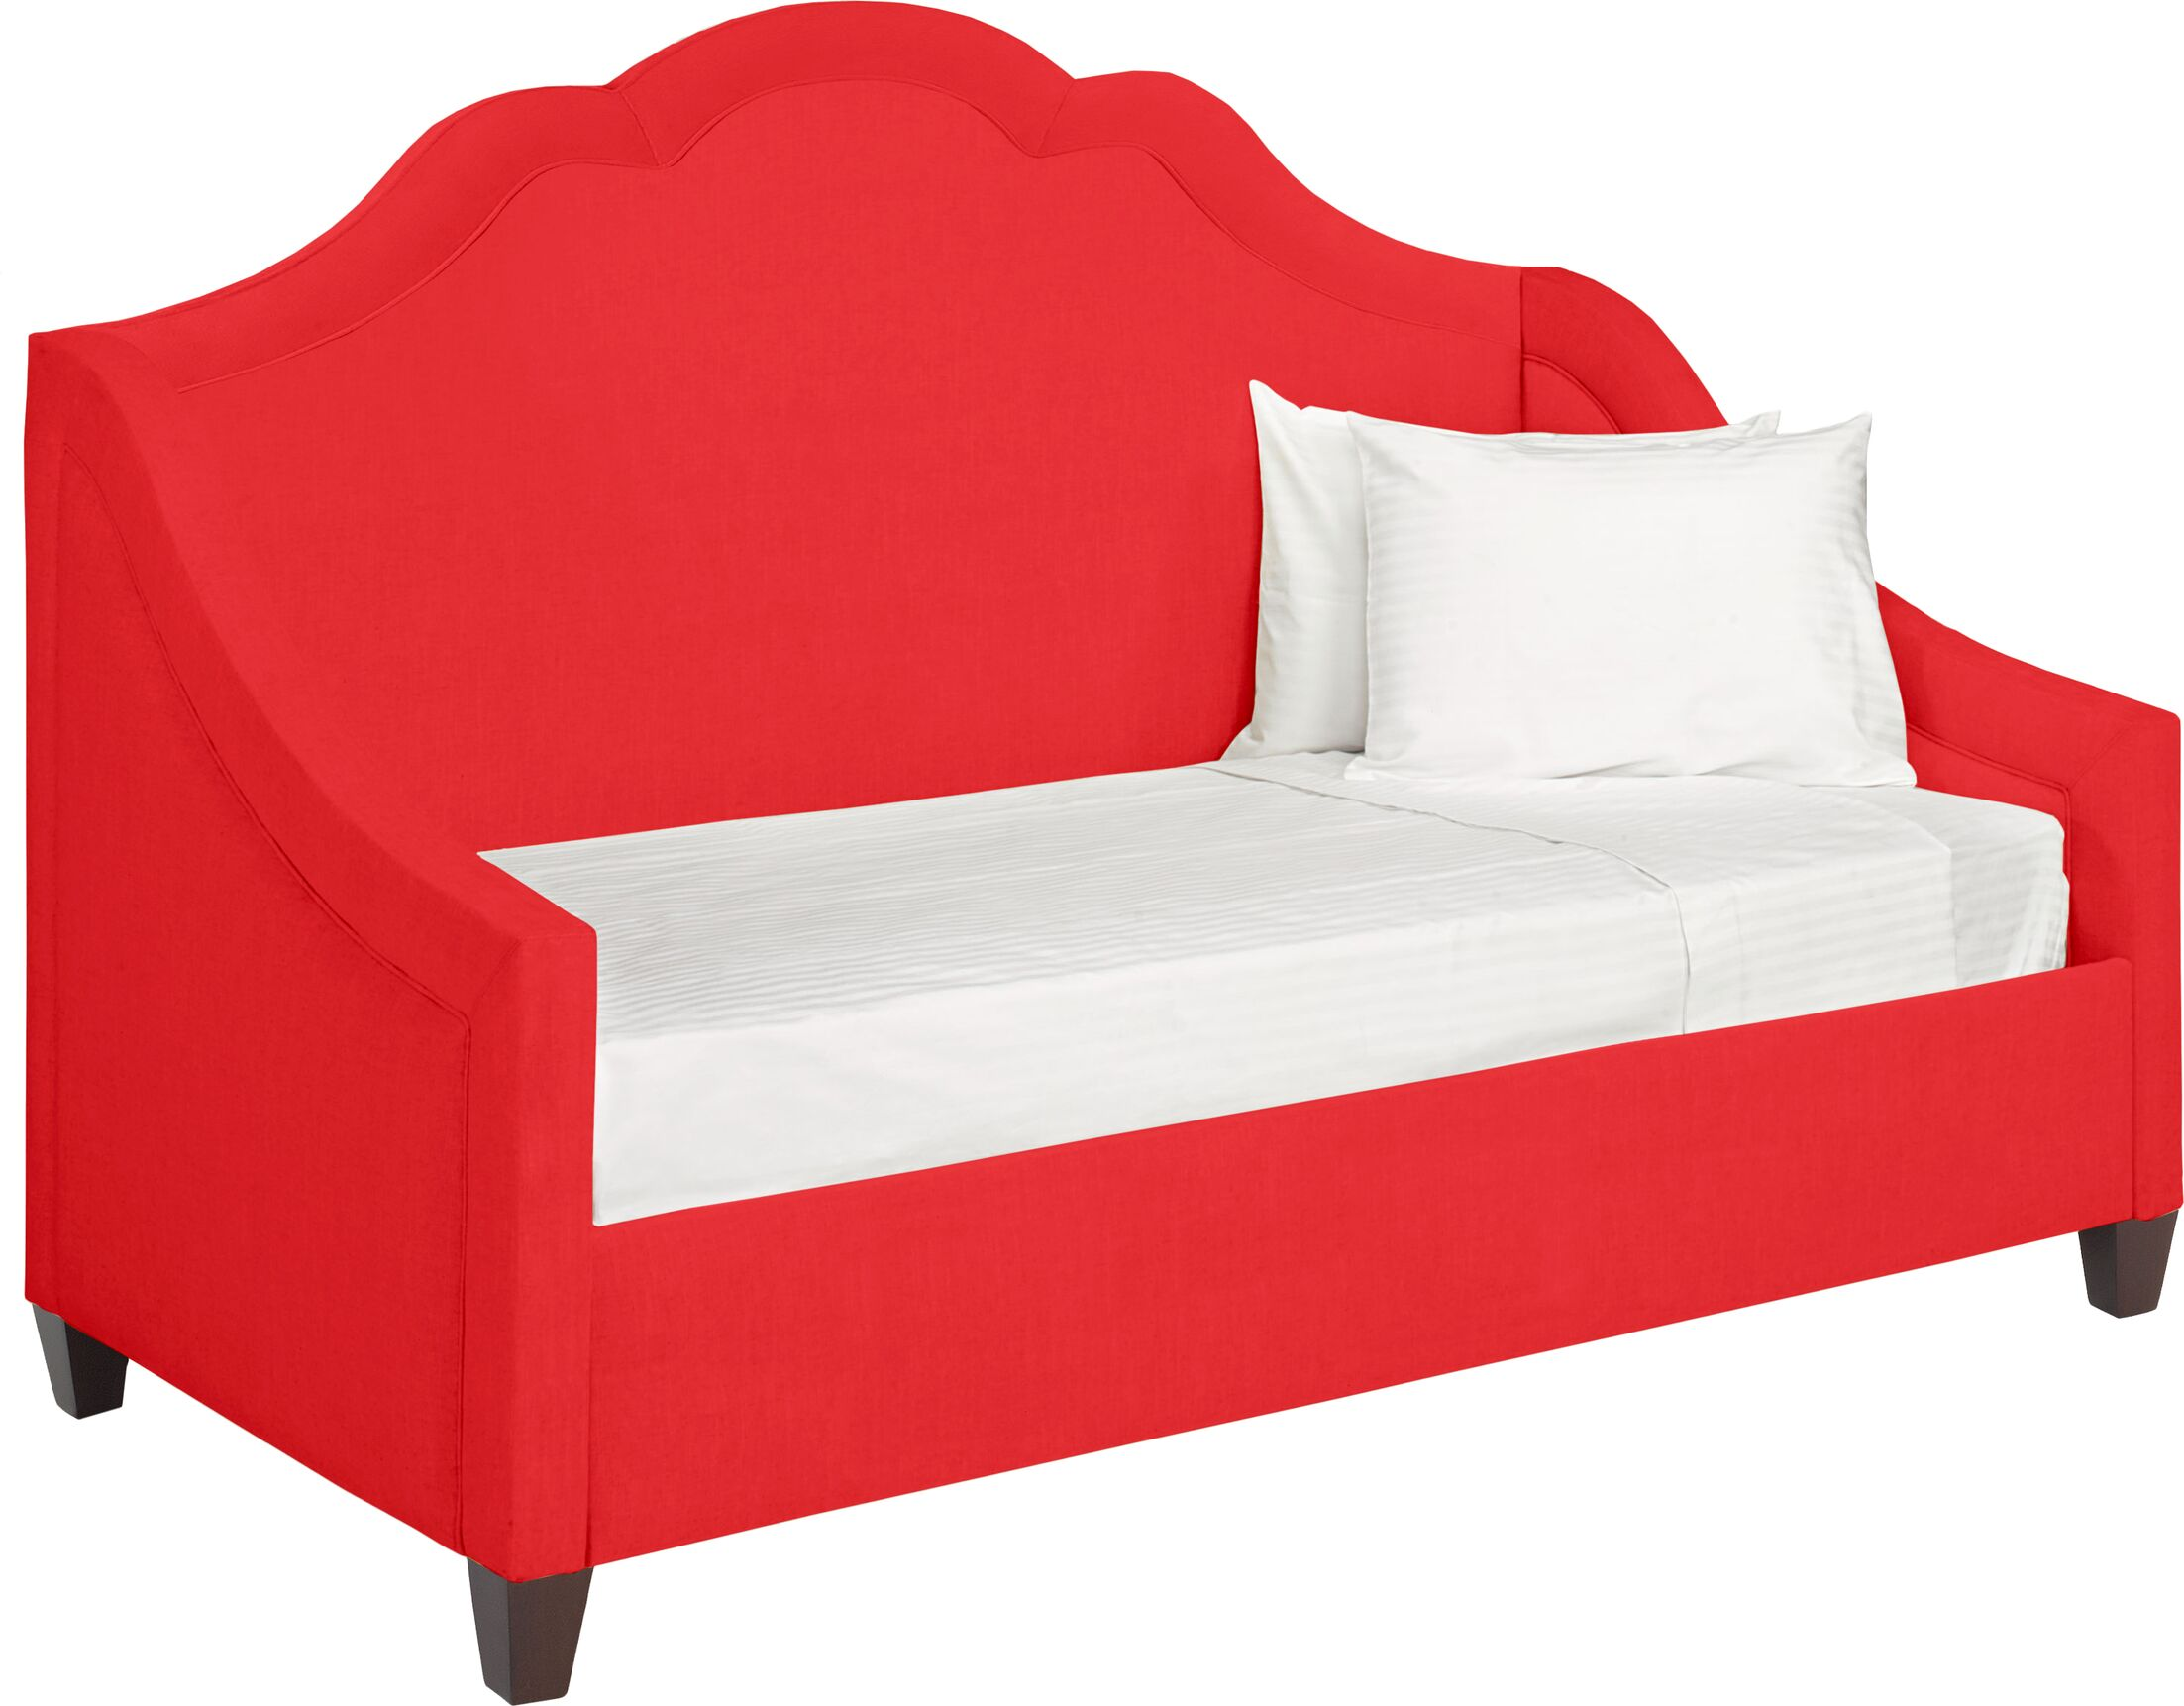 Dreamtime Daybed with Mattress Color: Scarlet, Size: Twin XL